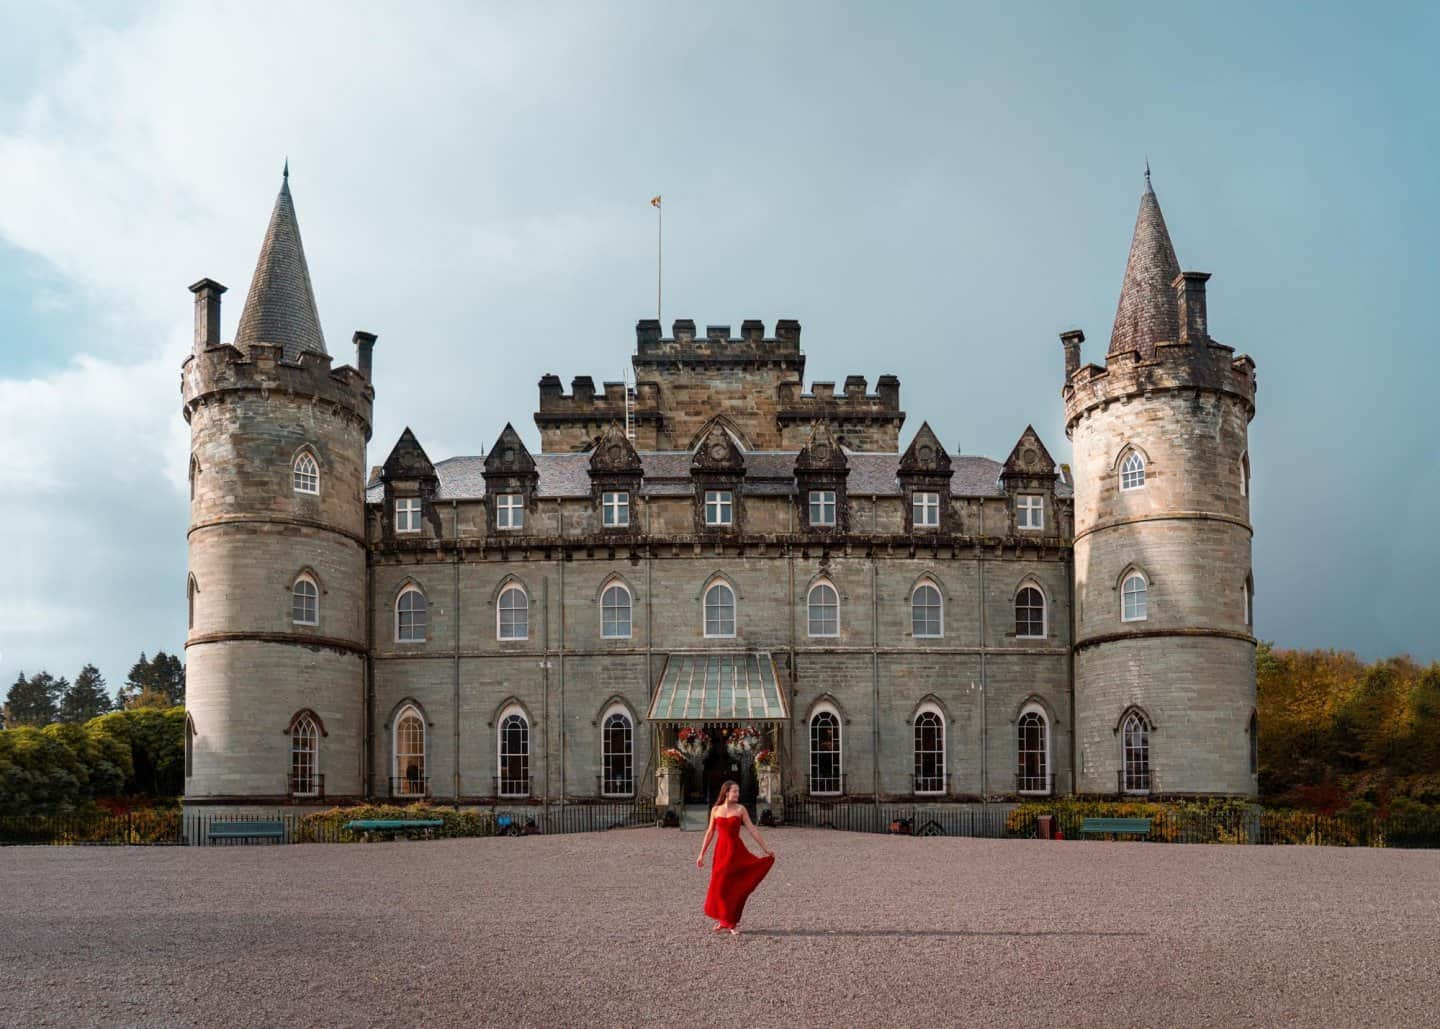 A real life princess in a red dress poses in front of Inveraray Castle in Scotland.